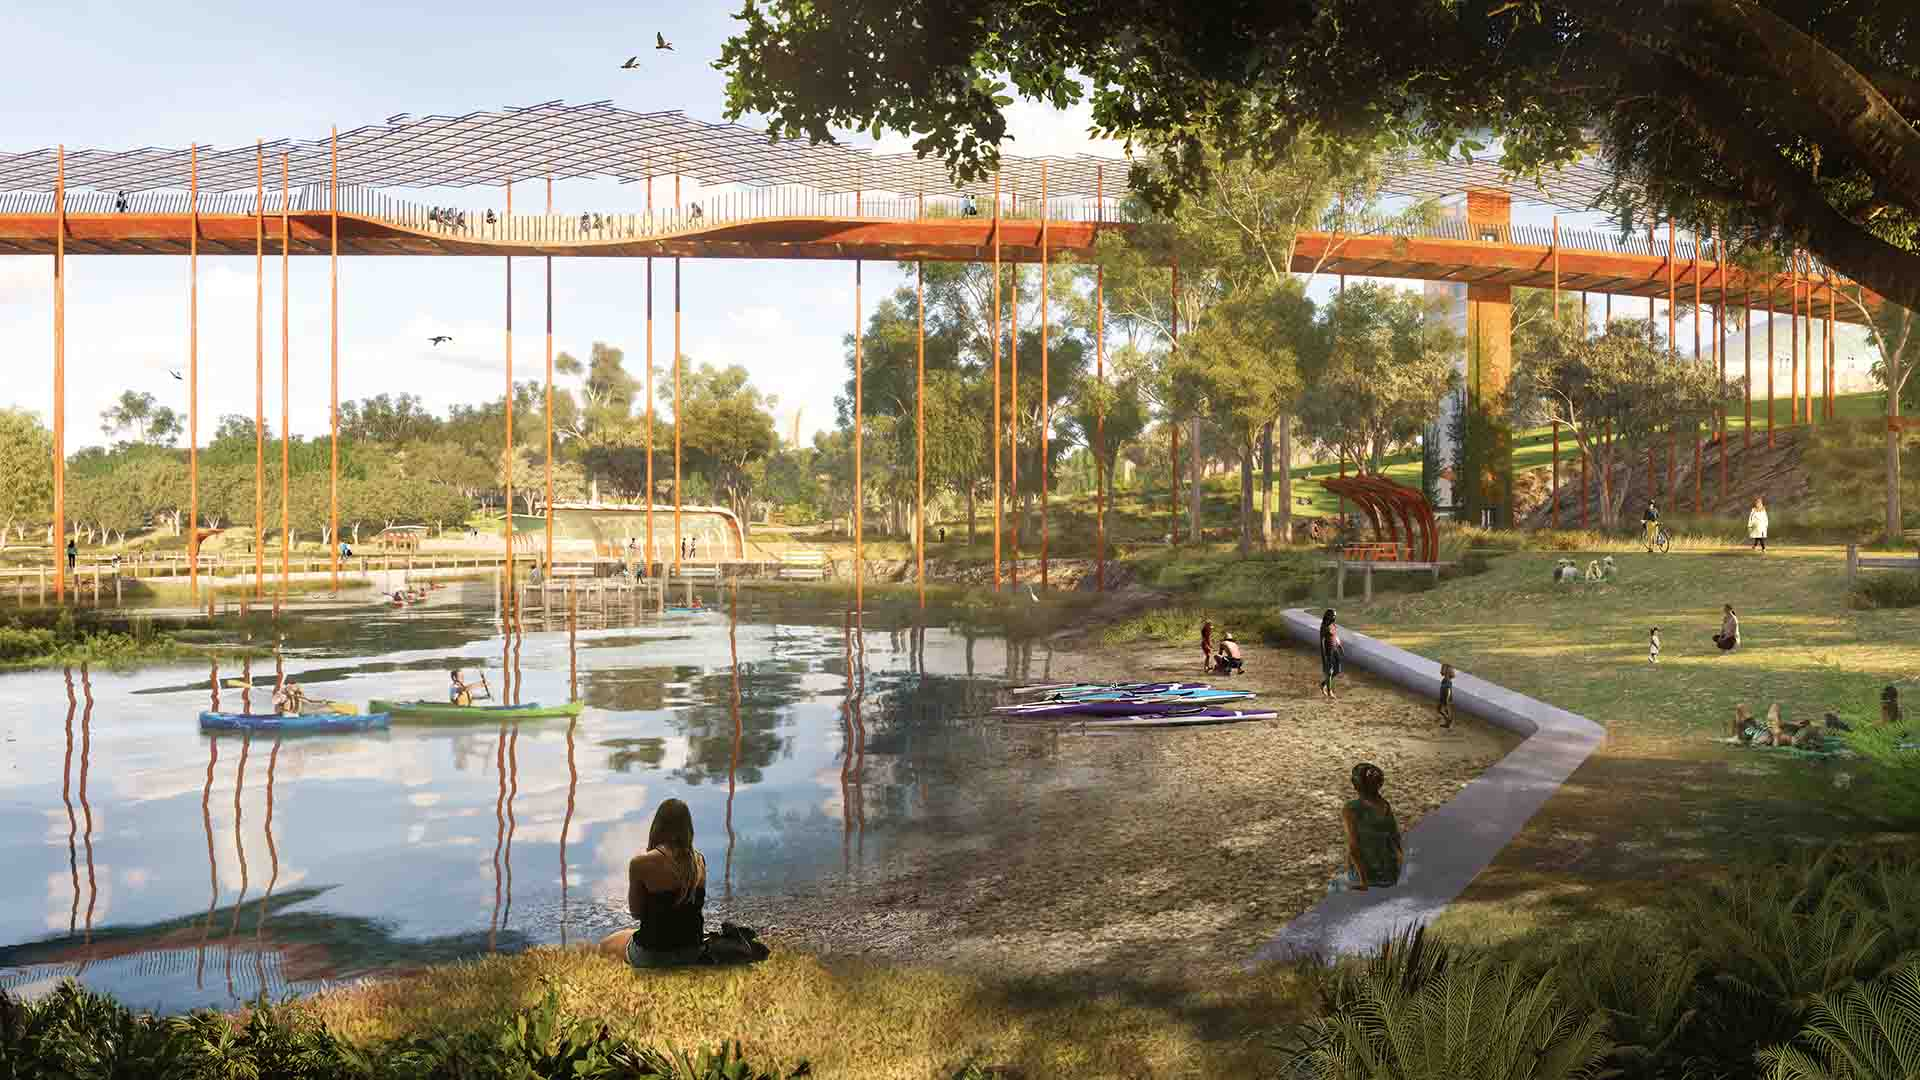 Brisbane's New 45-Hectare Inner-City Public Park Will Feature a Huge Lake and a High Ropes Course